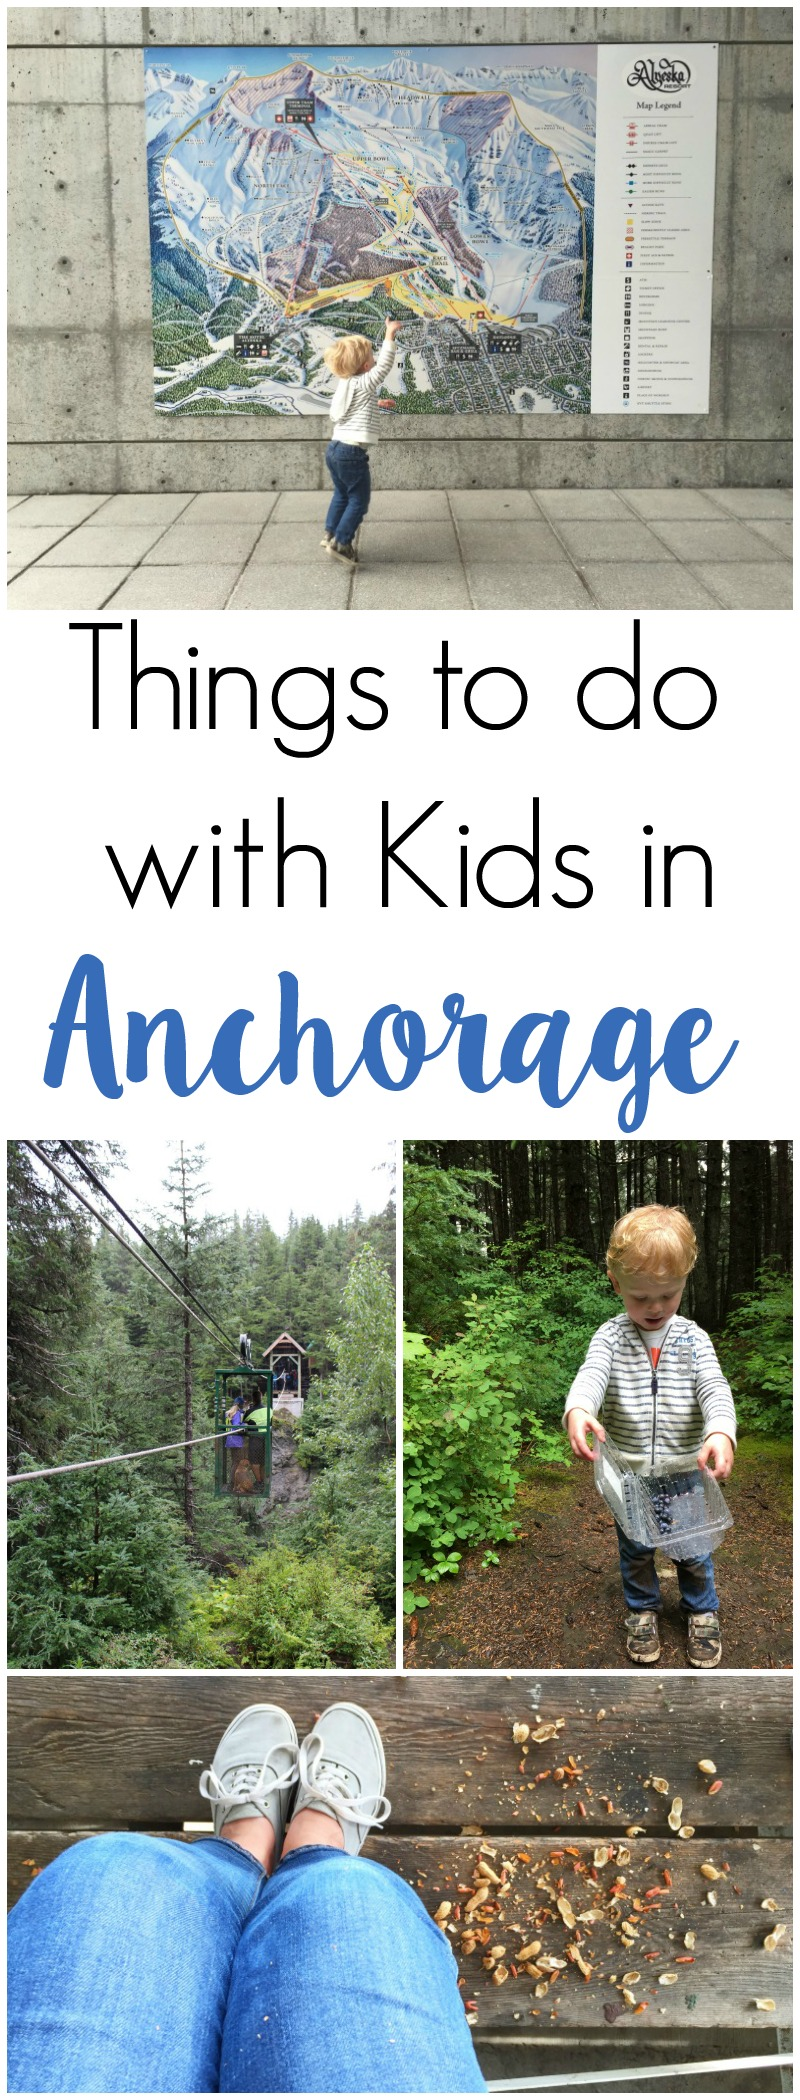 Things to do with Kids in Anchorage // Life Anchored